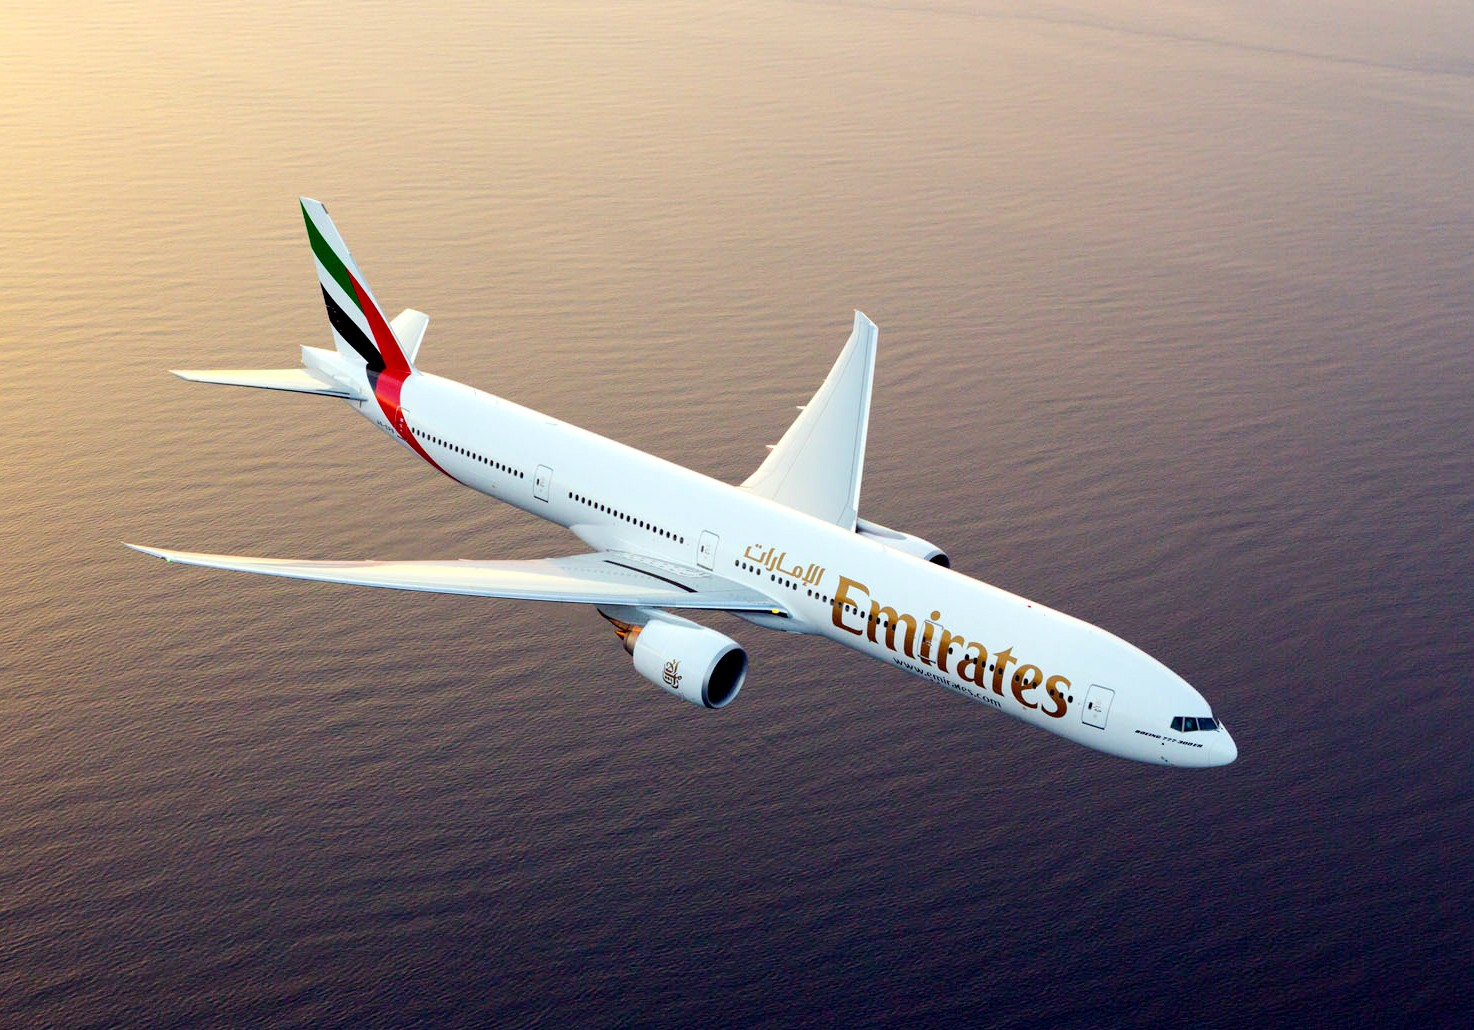 The Emirates Boeing 777-300 ER